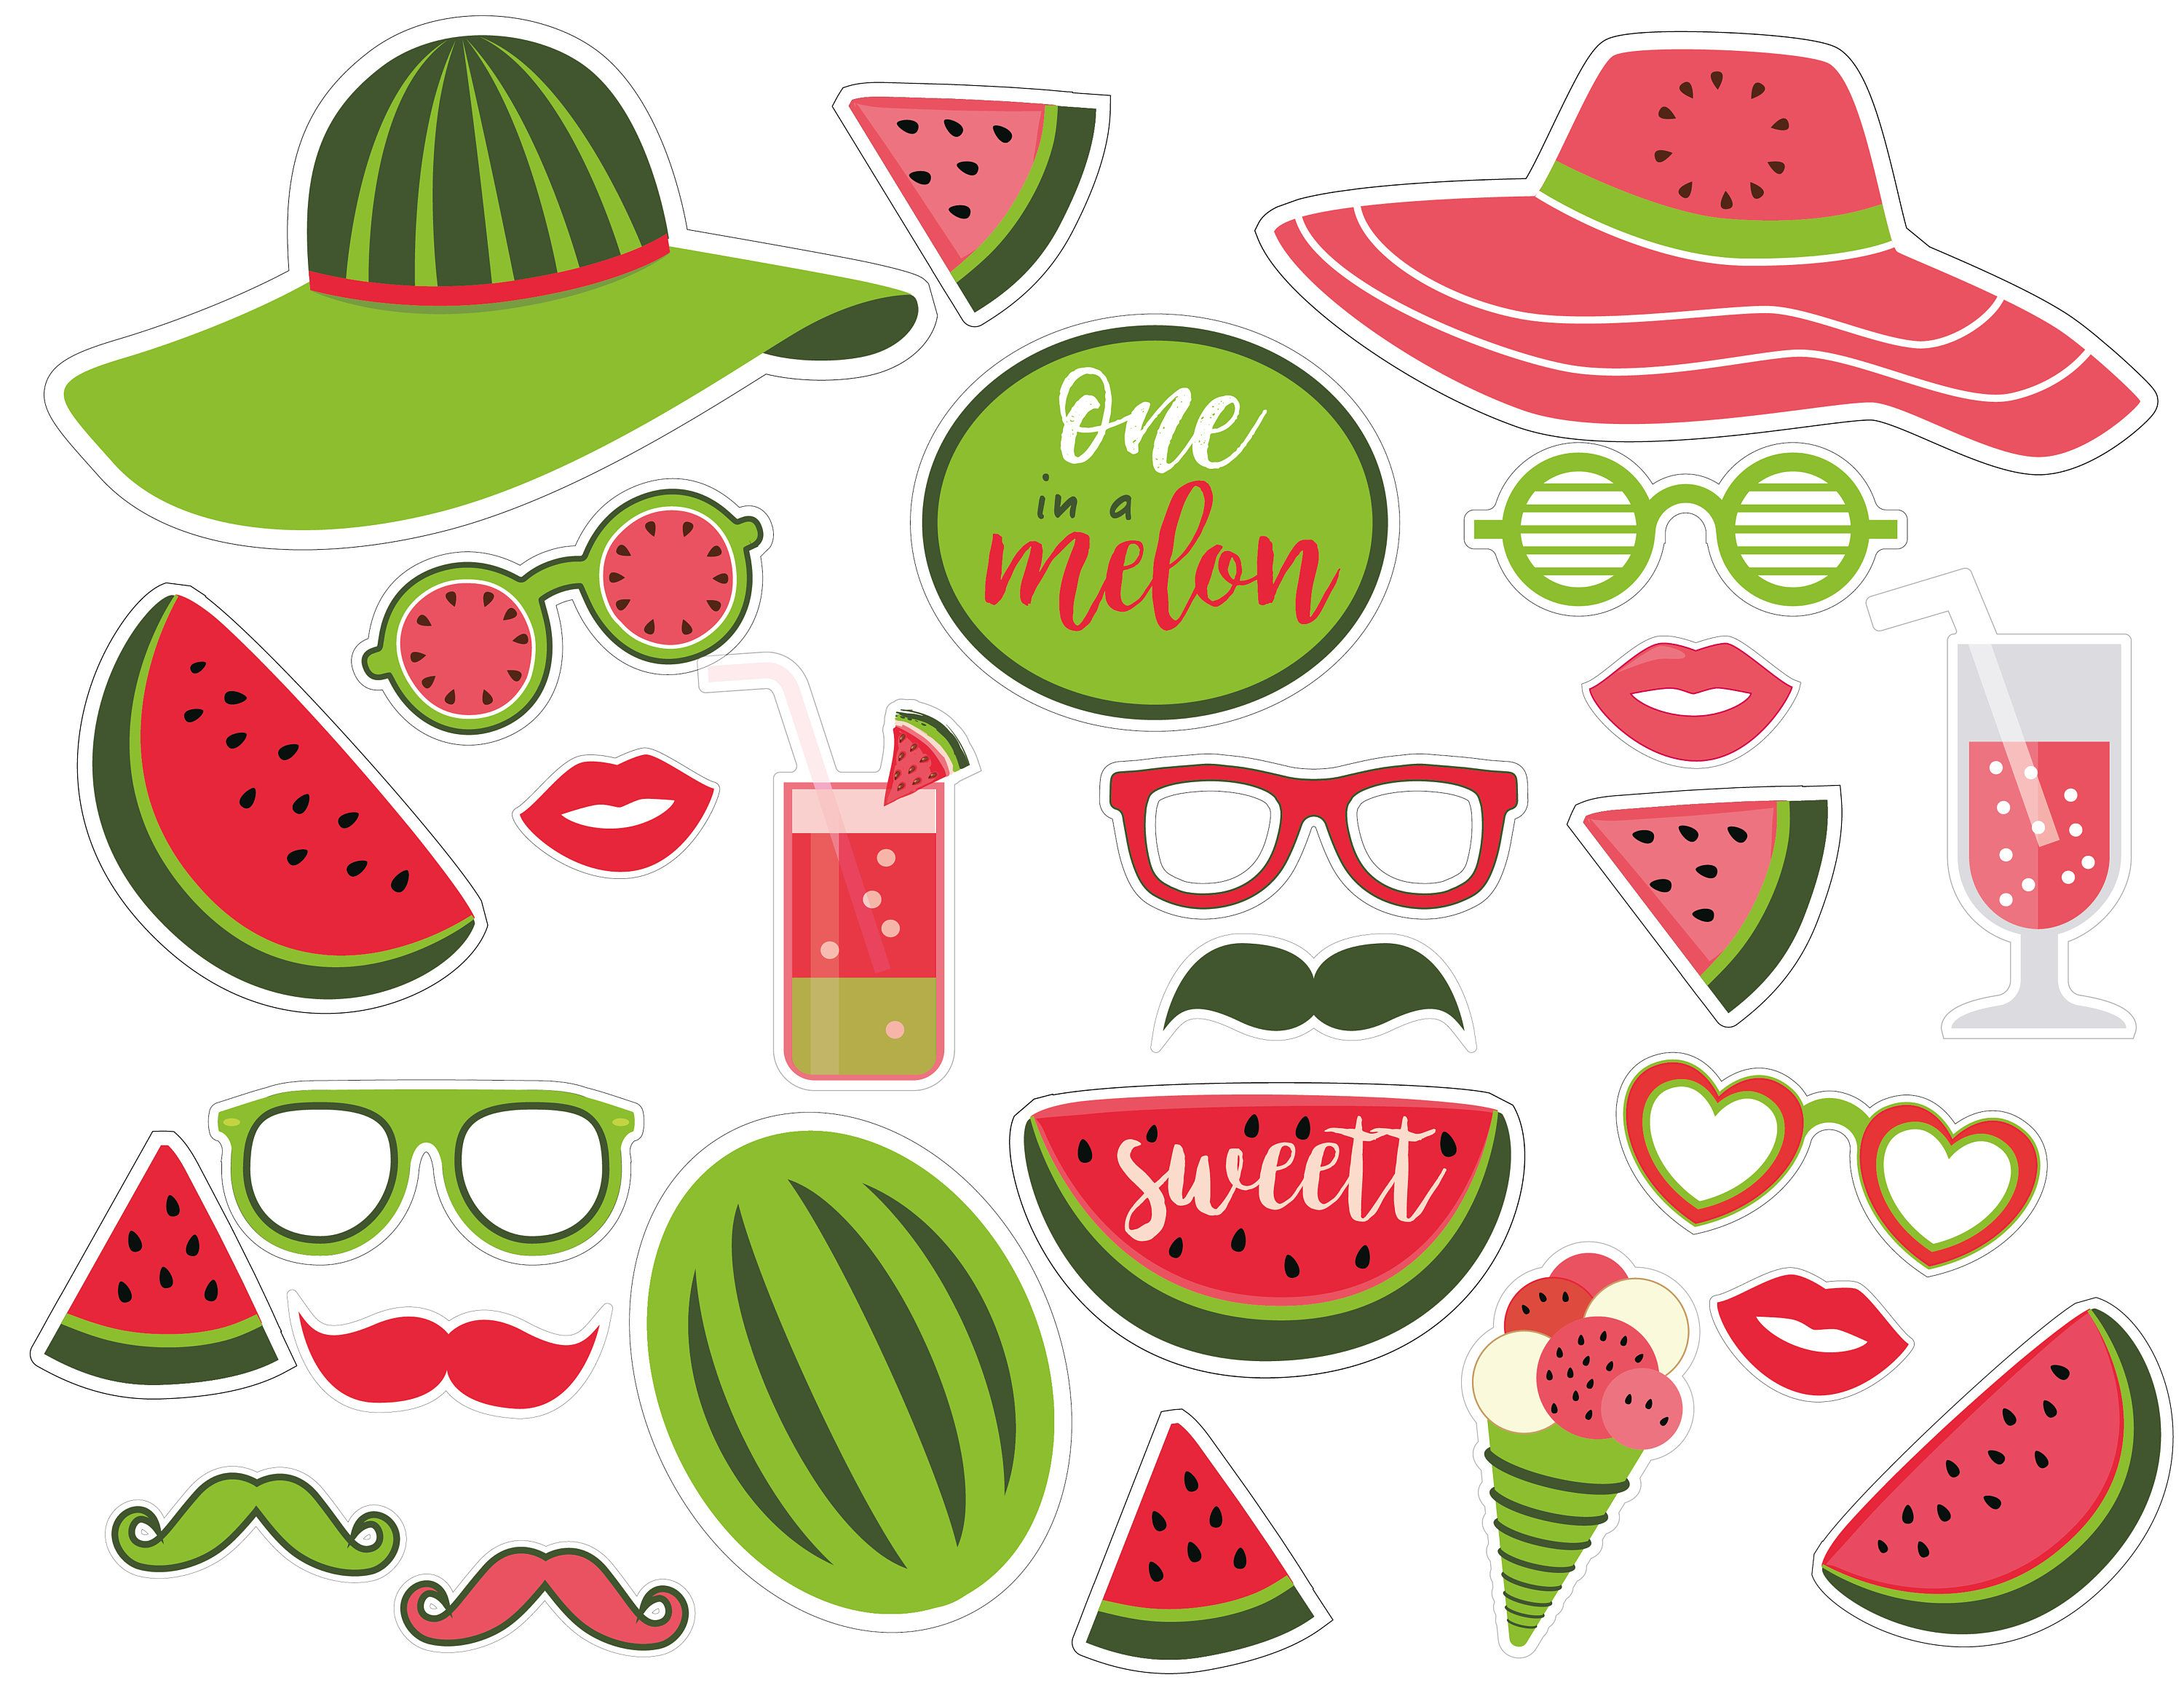 Free printable one in a melon clipart clip royalty free download Melon party props One in a melon birthday photo booth Watermelon ... clip royalty free download